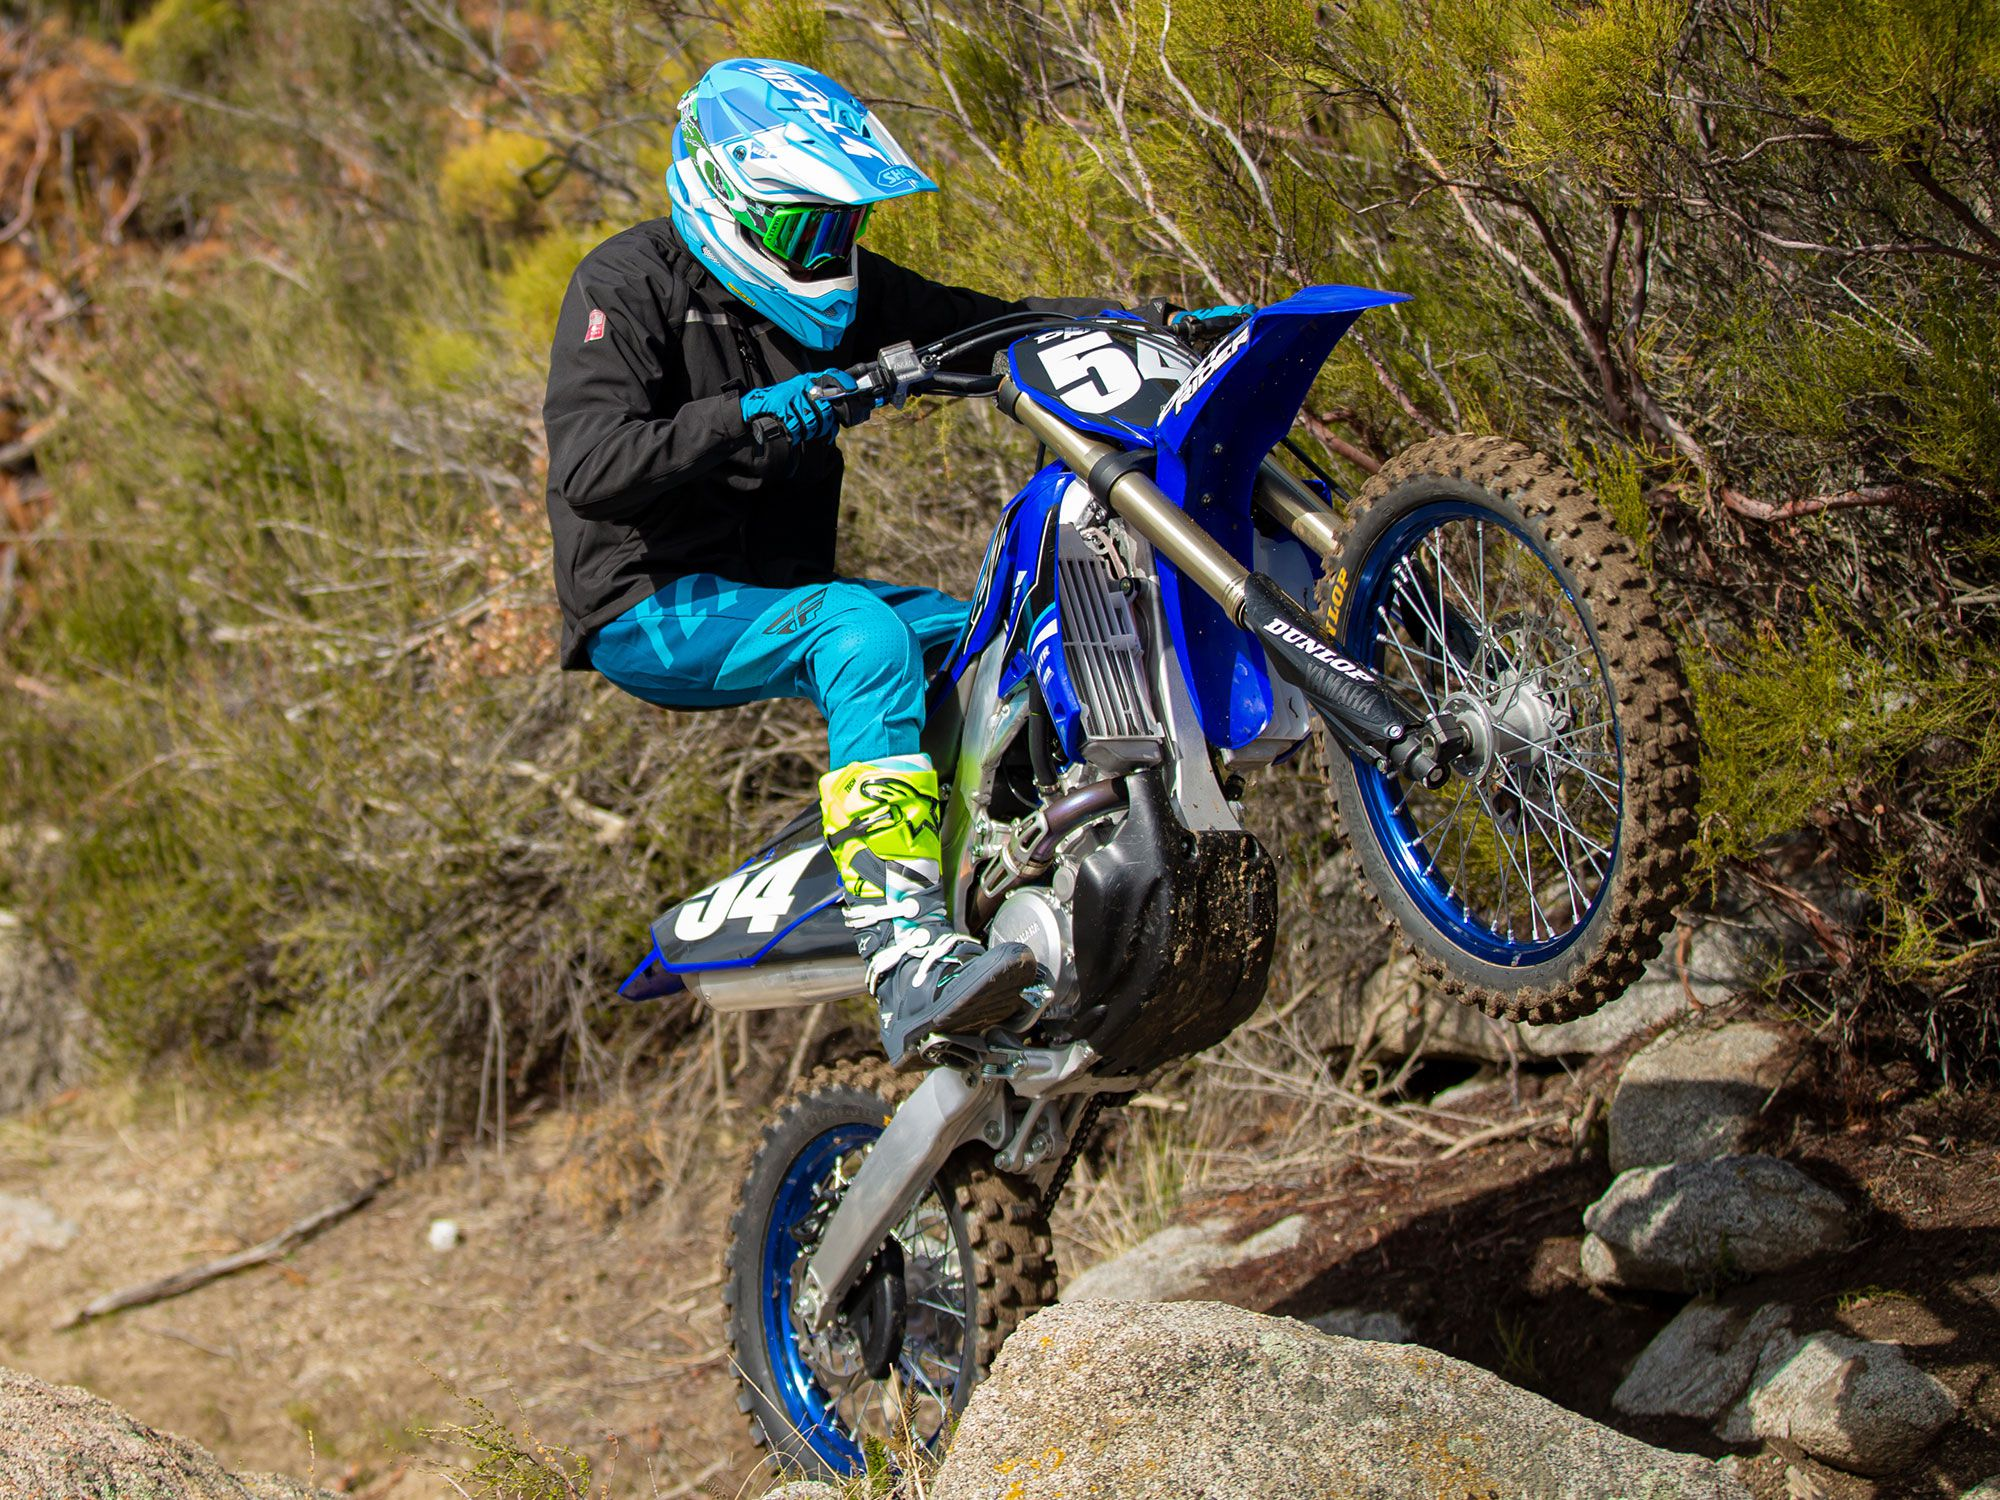 2021 Yamaha YZ250FX Review